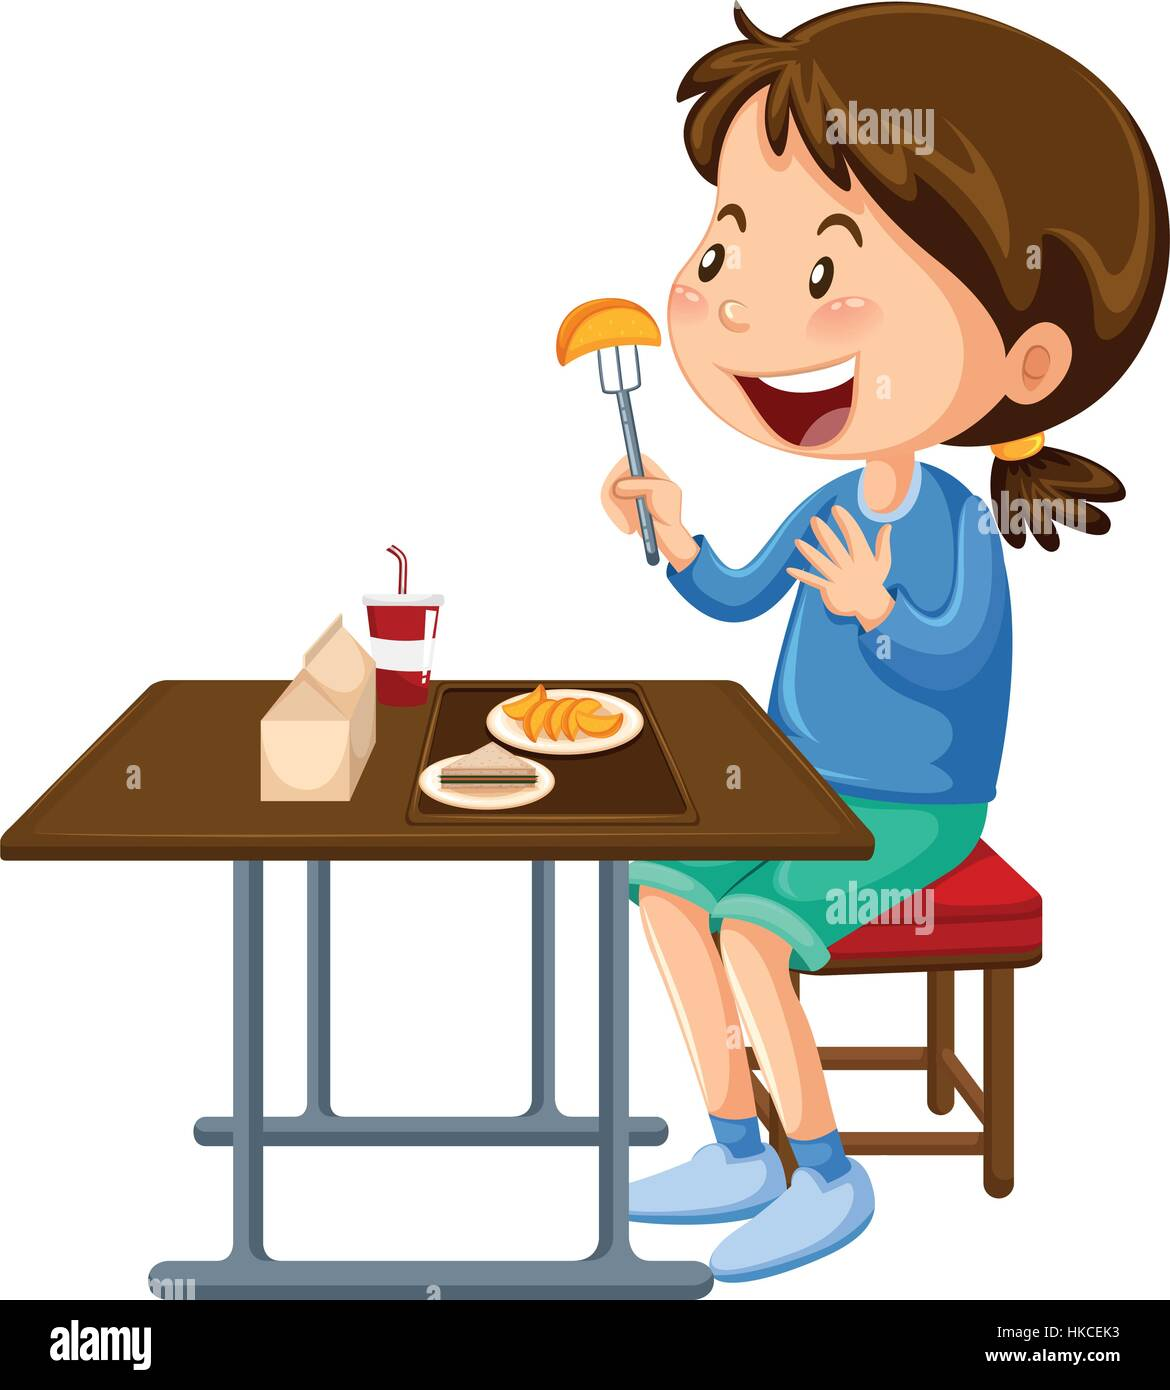 girl eating at the canteen dining table illustration stock Students in Line Clip Art Sitting at Lunch Clip Art